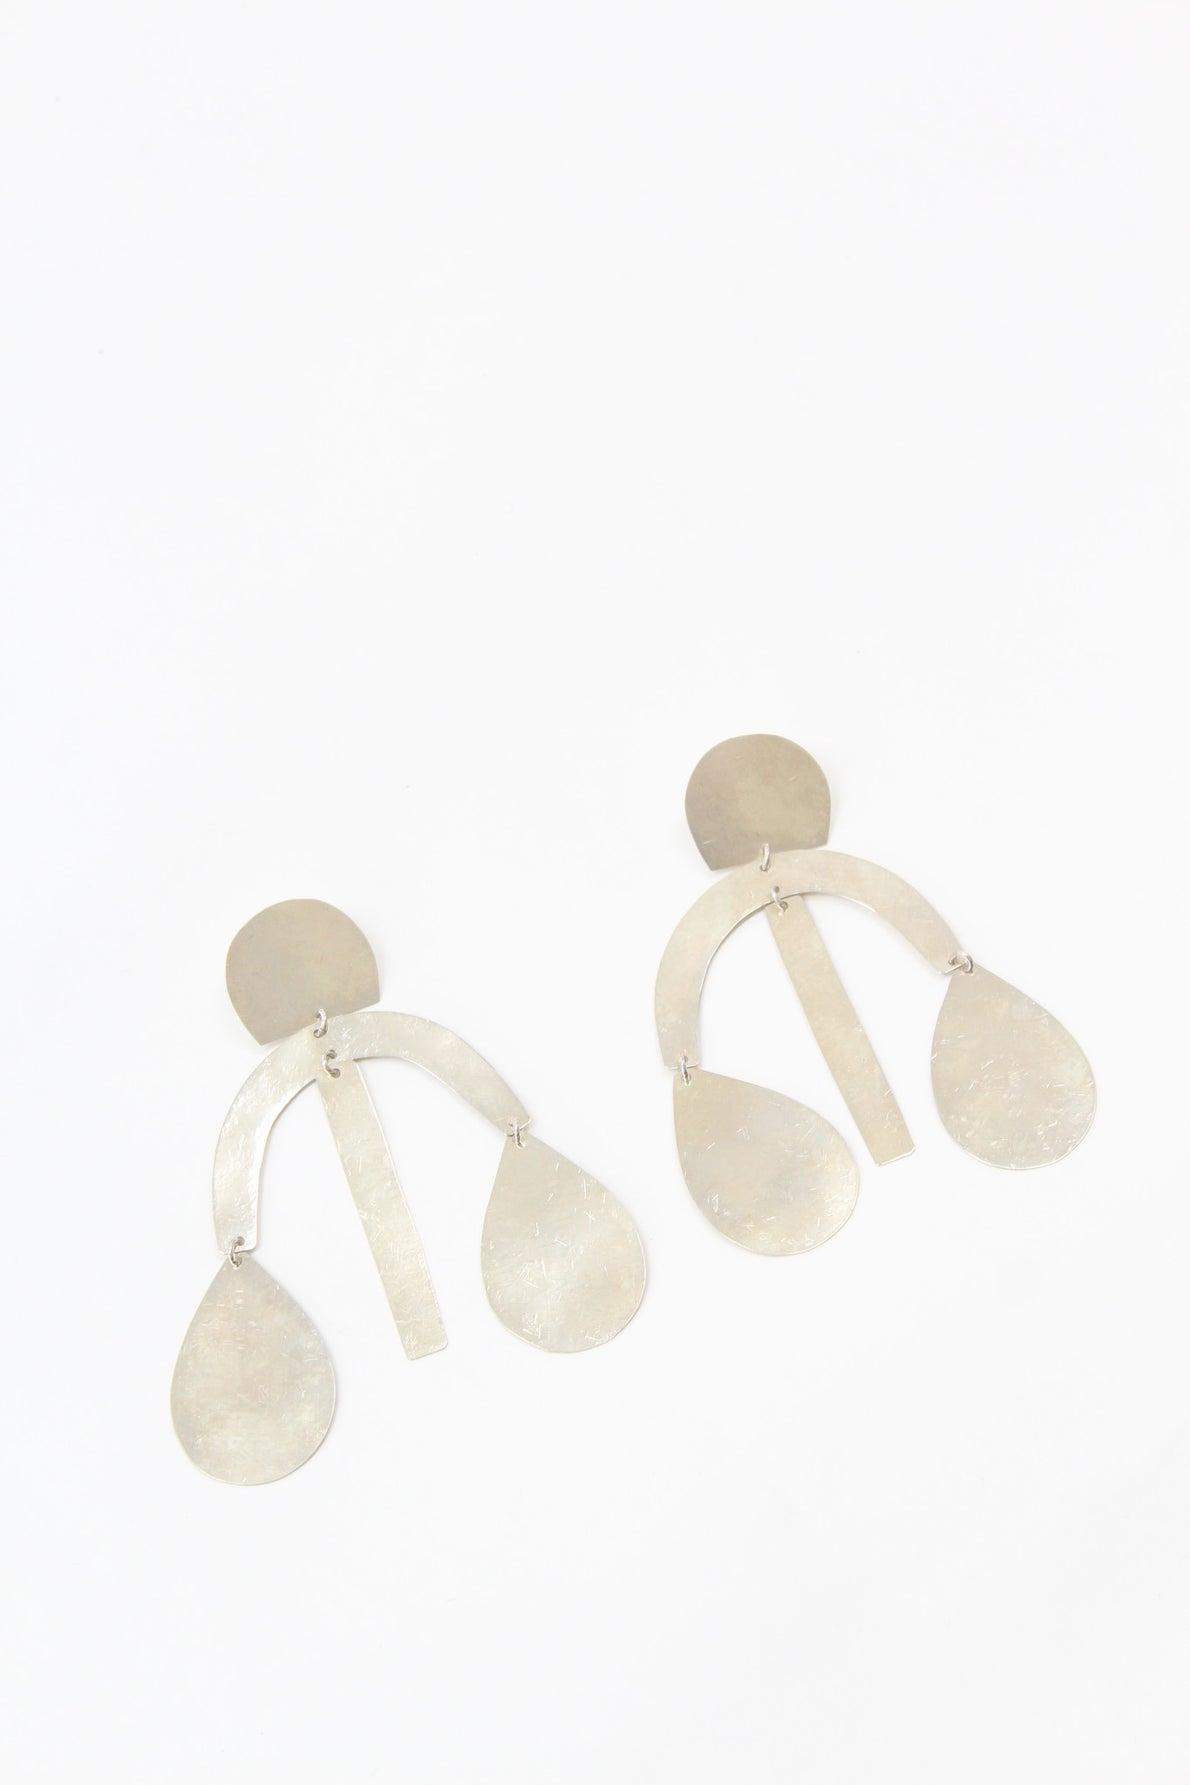 Annie Costello Brown Arc Drop Chandelier Earring Silver